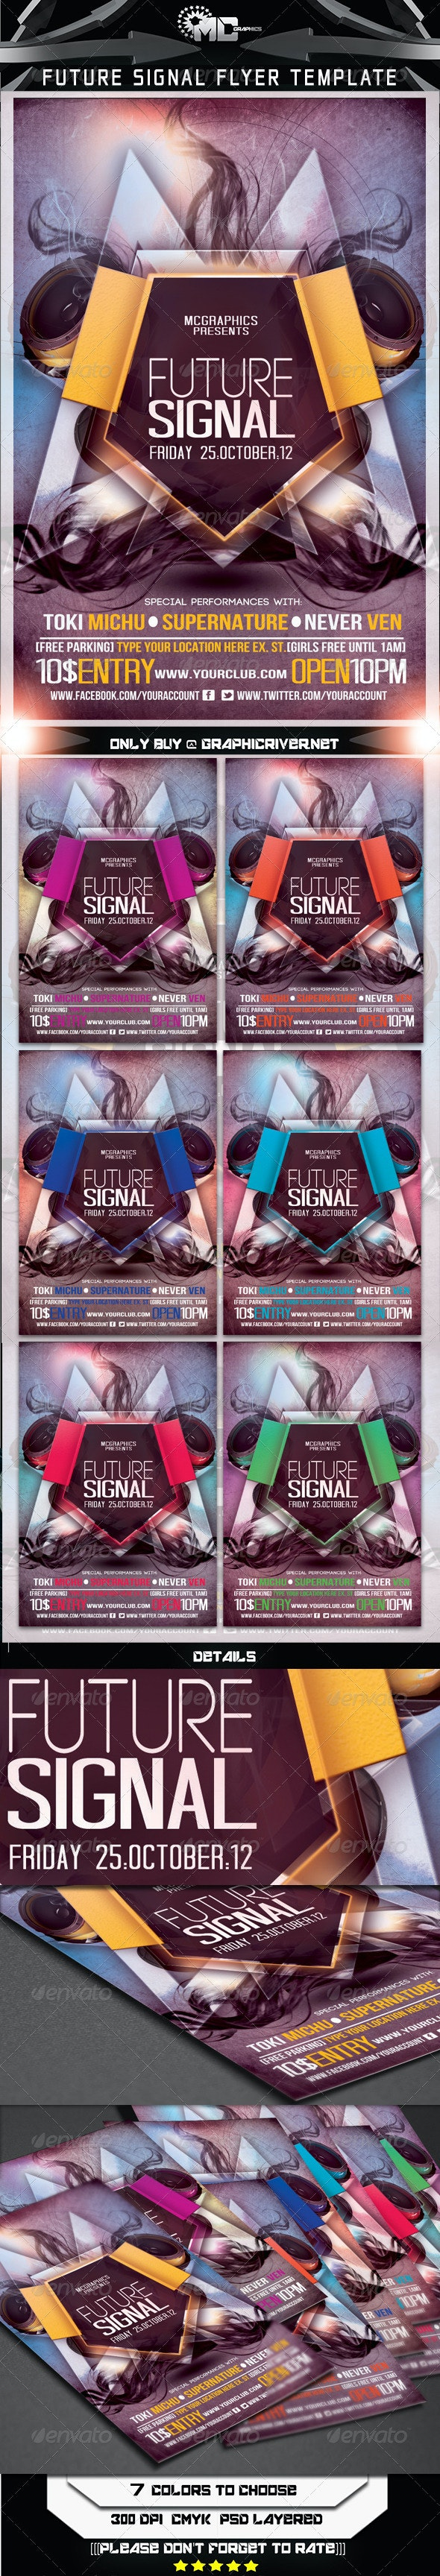 Future Signal Flyer Template - Clubs & Parties Events